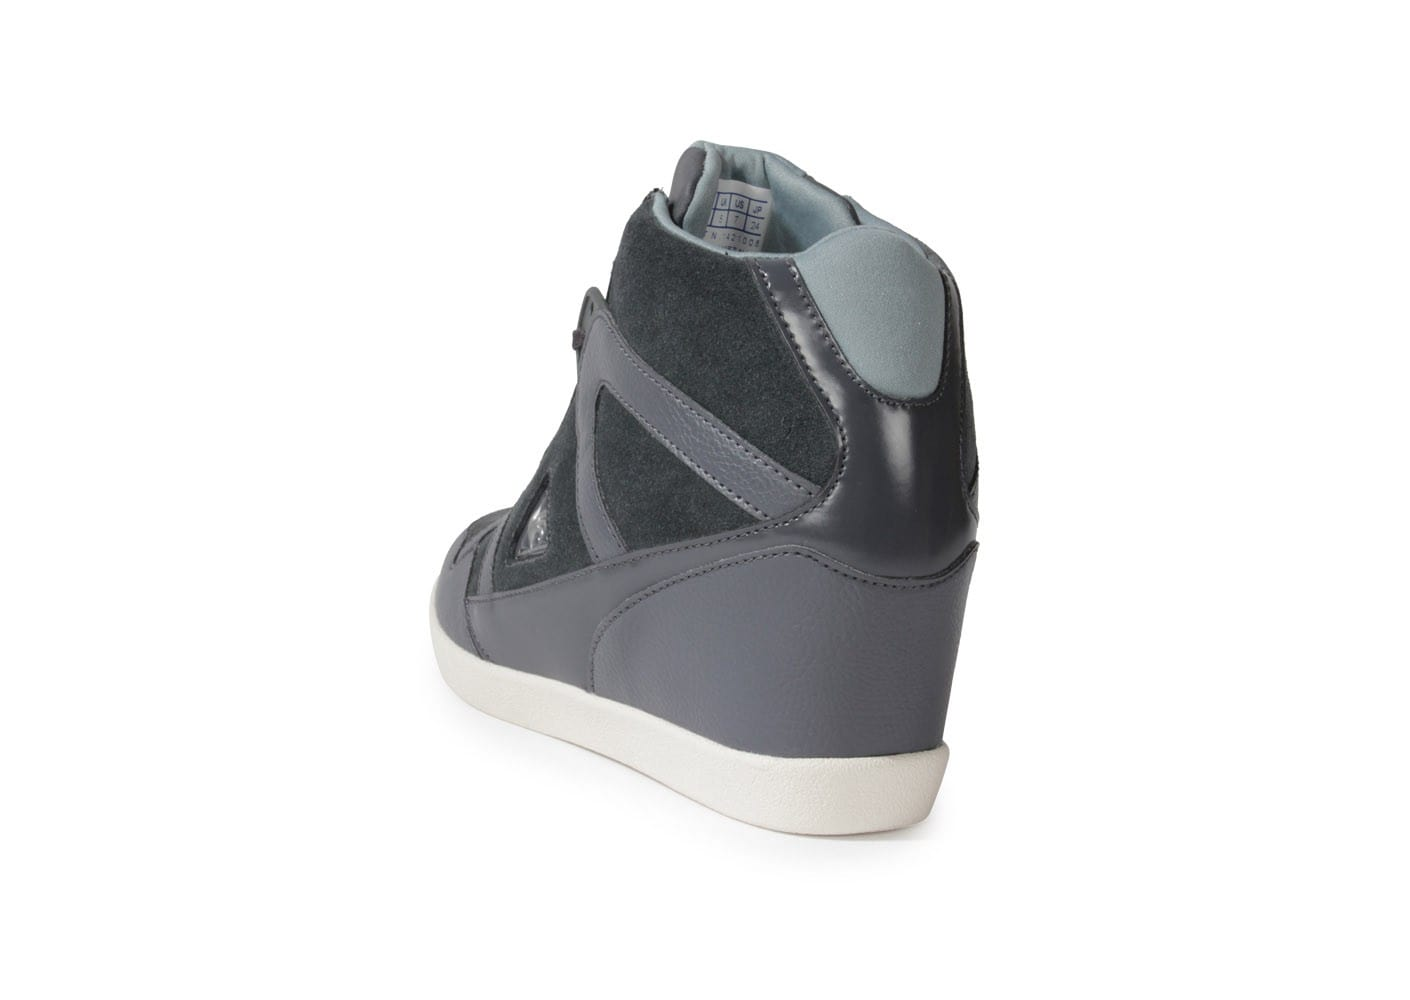 Wedge Vikky Wmns Puma N0pwoxk8n Chaussure Compensee IY76gmbfyv